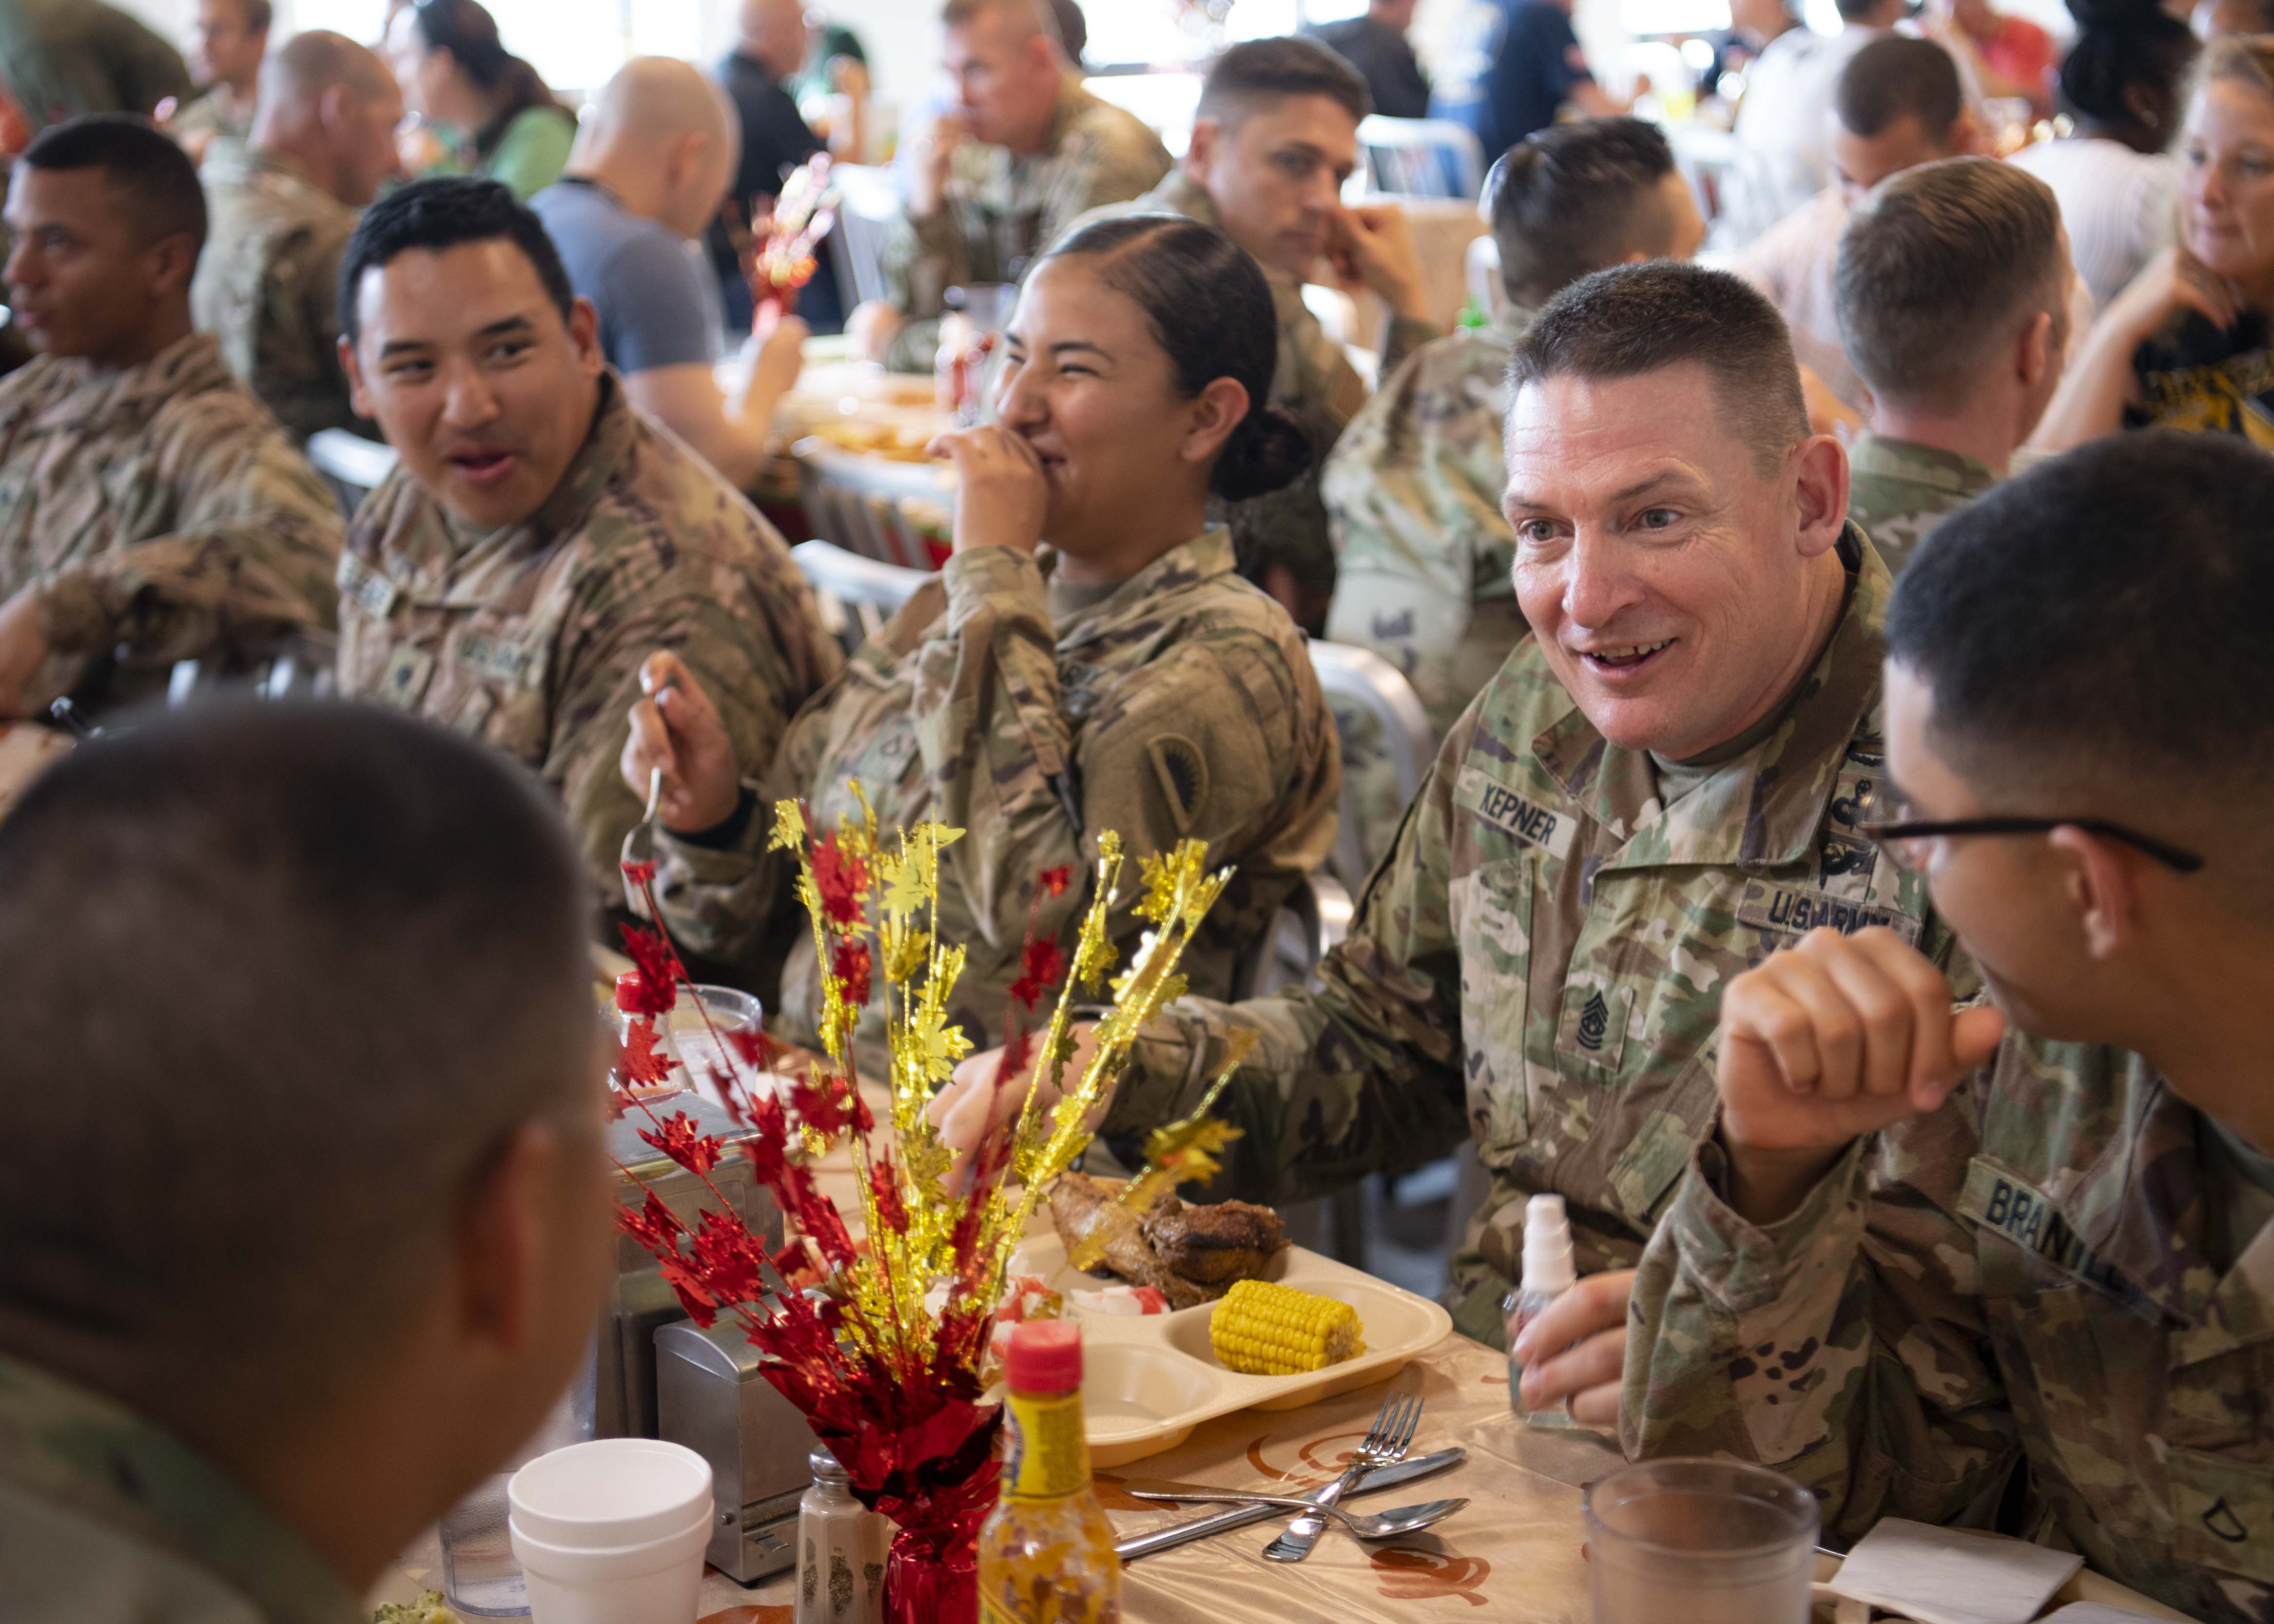 U.S. Army Command Sgt. Maj. Christopher Kepner, senior enlisted advisor to the Chief, National Guard Bureau, (center right), eats Thanksgiving dinner with U.S. service members at Camp Lemonnier, Djibouti, Nov. 28, 2019. Kepner visited Camp Lemonnier to meet with deployed National Guardsmen and other service members. (U.S. Air Force photo by Staff Sgt. J.D. Strong II)